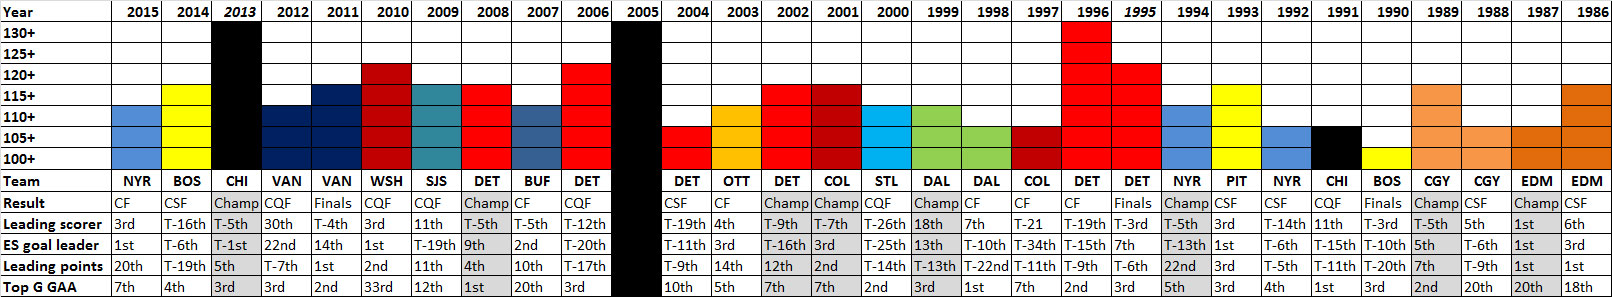 How Predictive Is The Presidents' Trophy Of Stanley Cup Playoff Success?